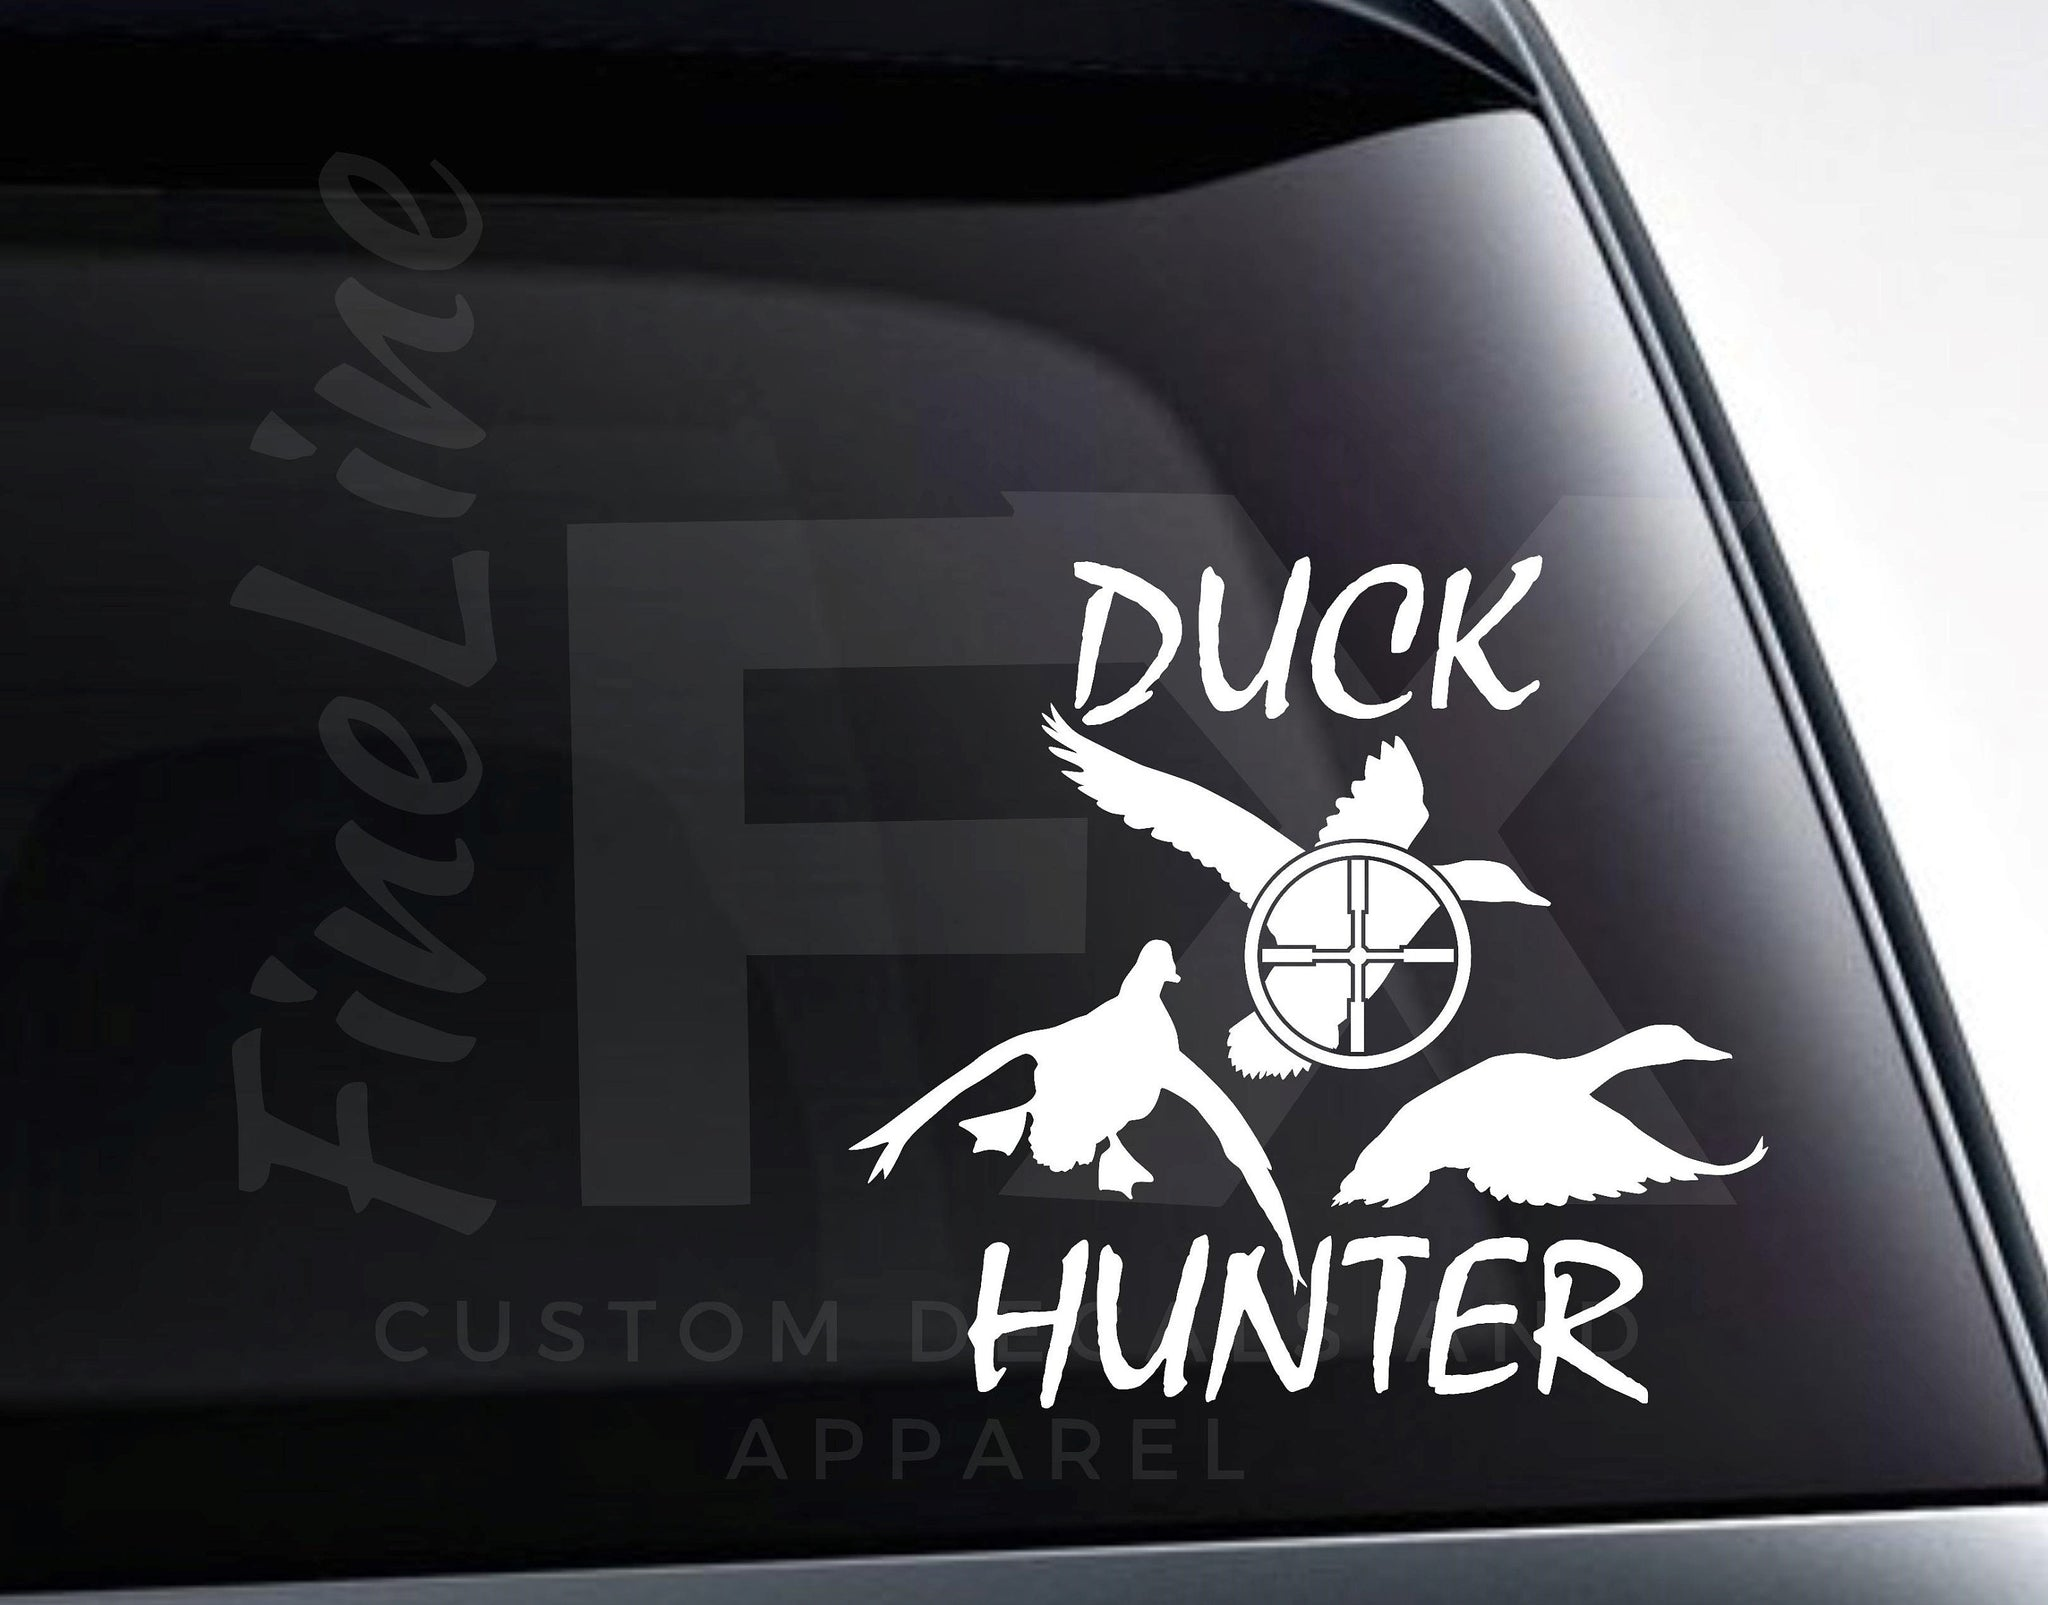 Duck Hunter Ducks And Rifle Scope Vinyl Decal Sticker